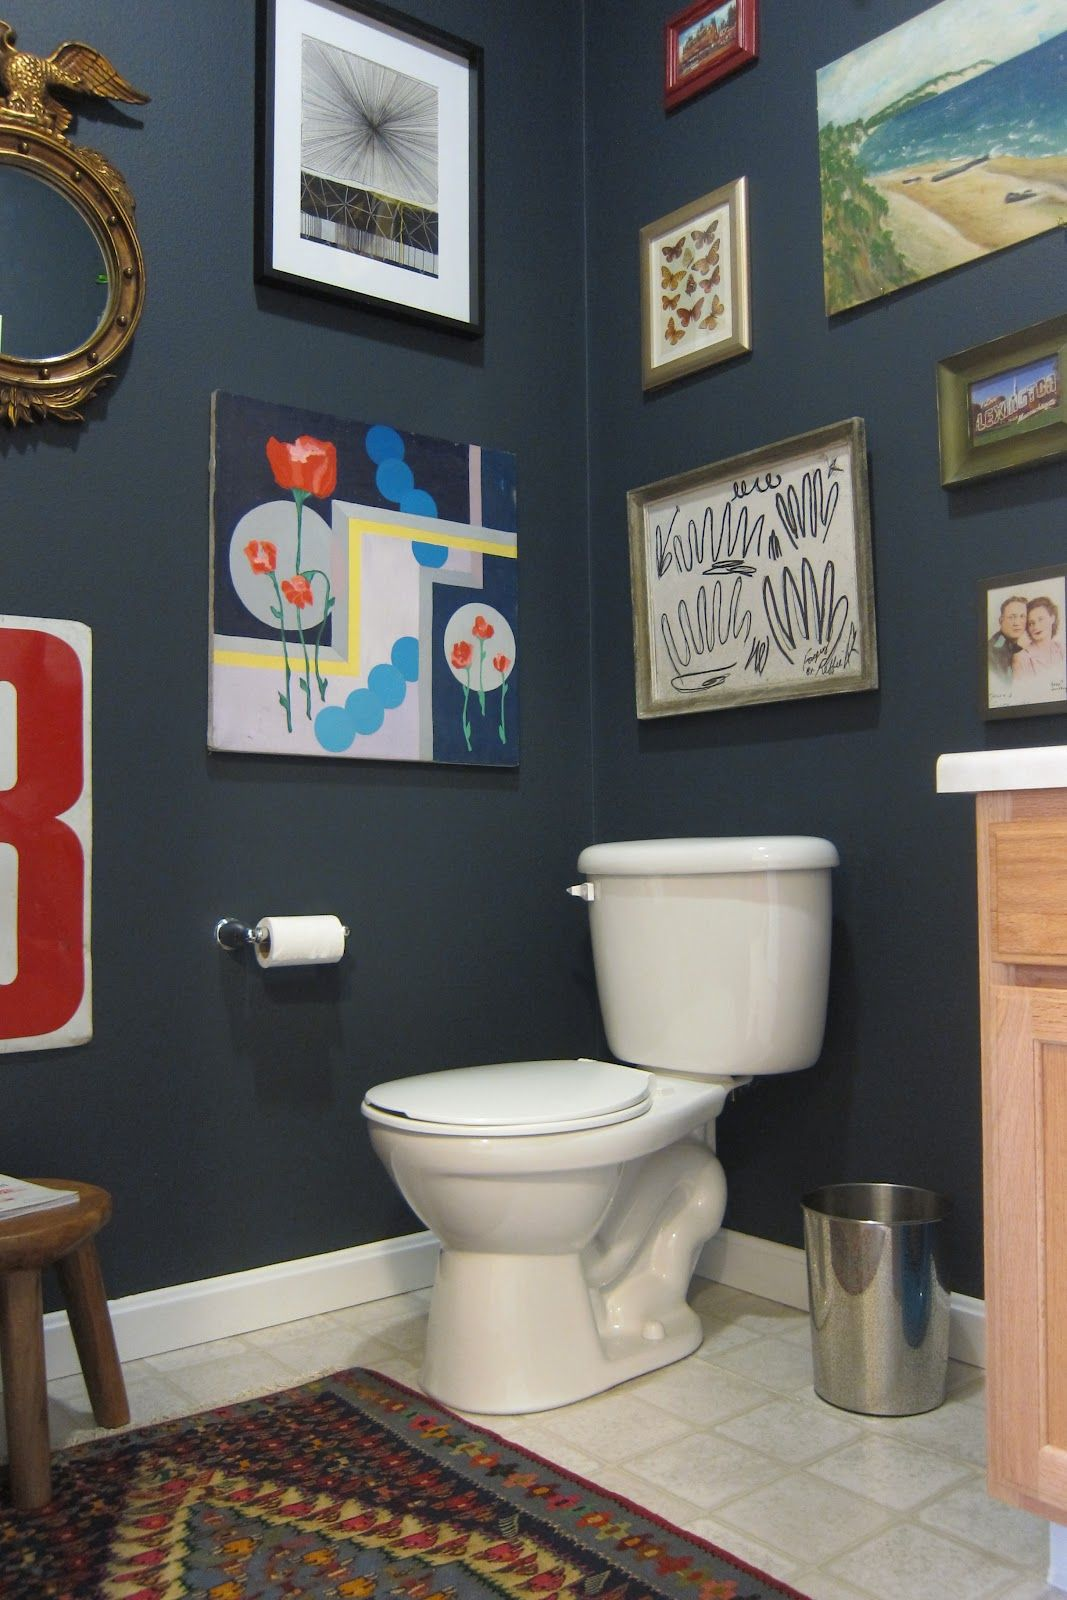 Wall Color Benjamin Moore Blue Note 2129 30 That Would Be So Cute To Hang Your Children S Drawings In There Bathroom Like